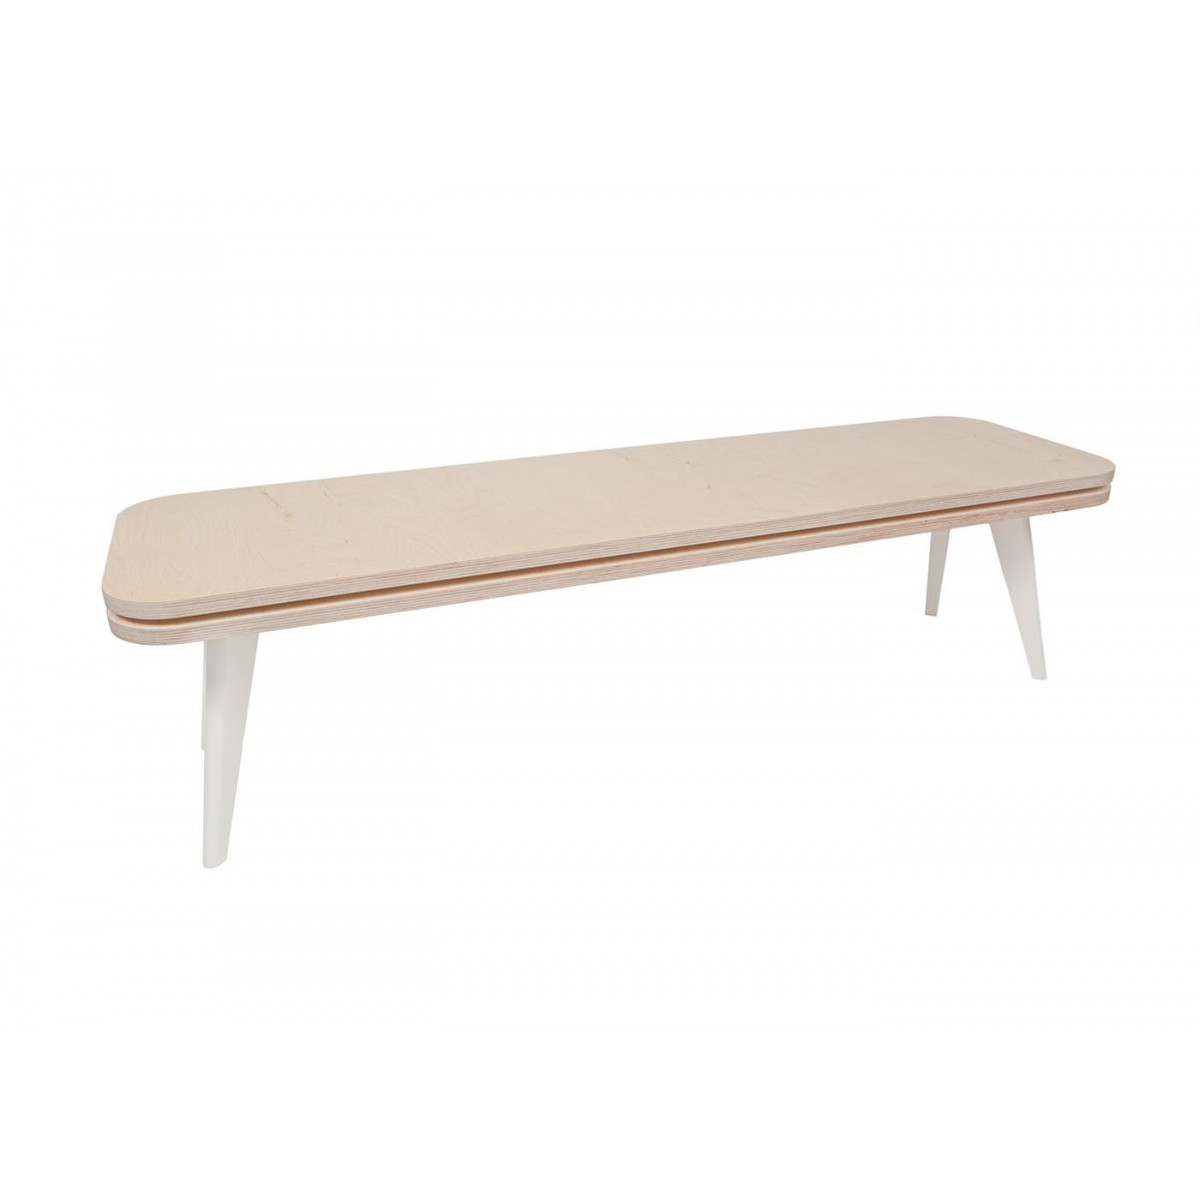 Table Basse Design Bois Clair u2013 Ezooq com # Table Bois Design Scandinave